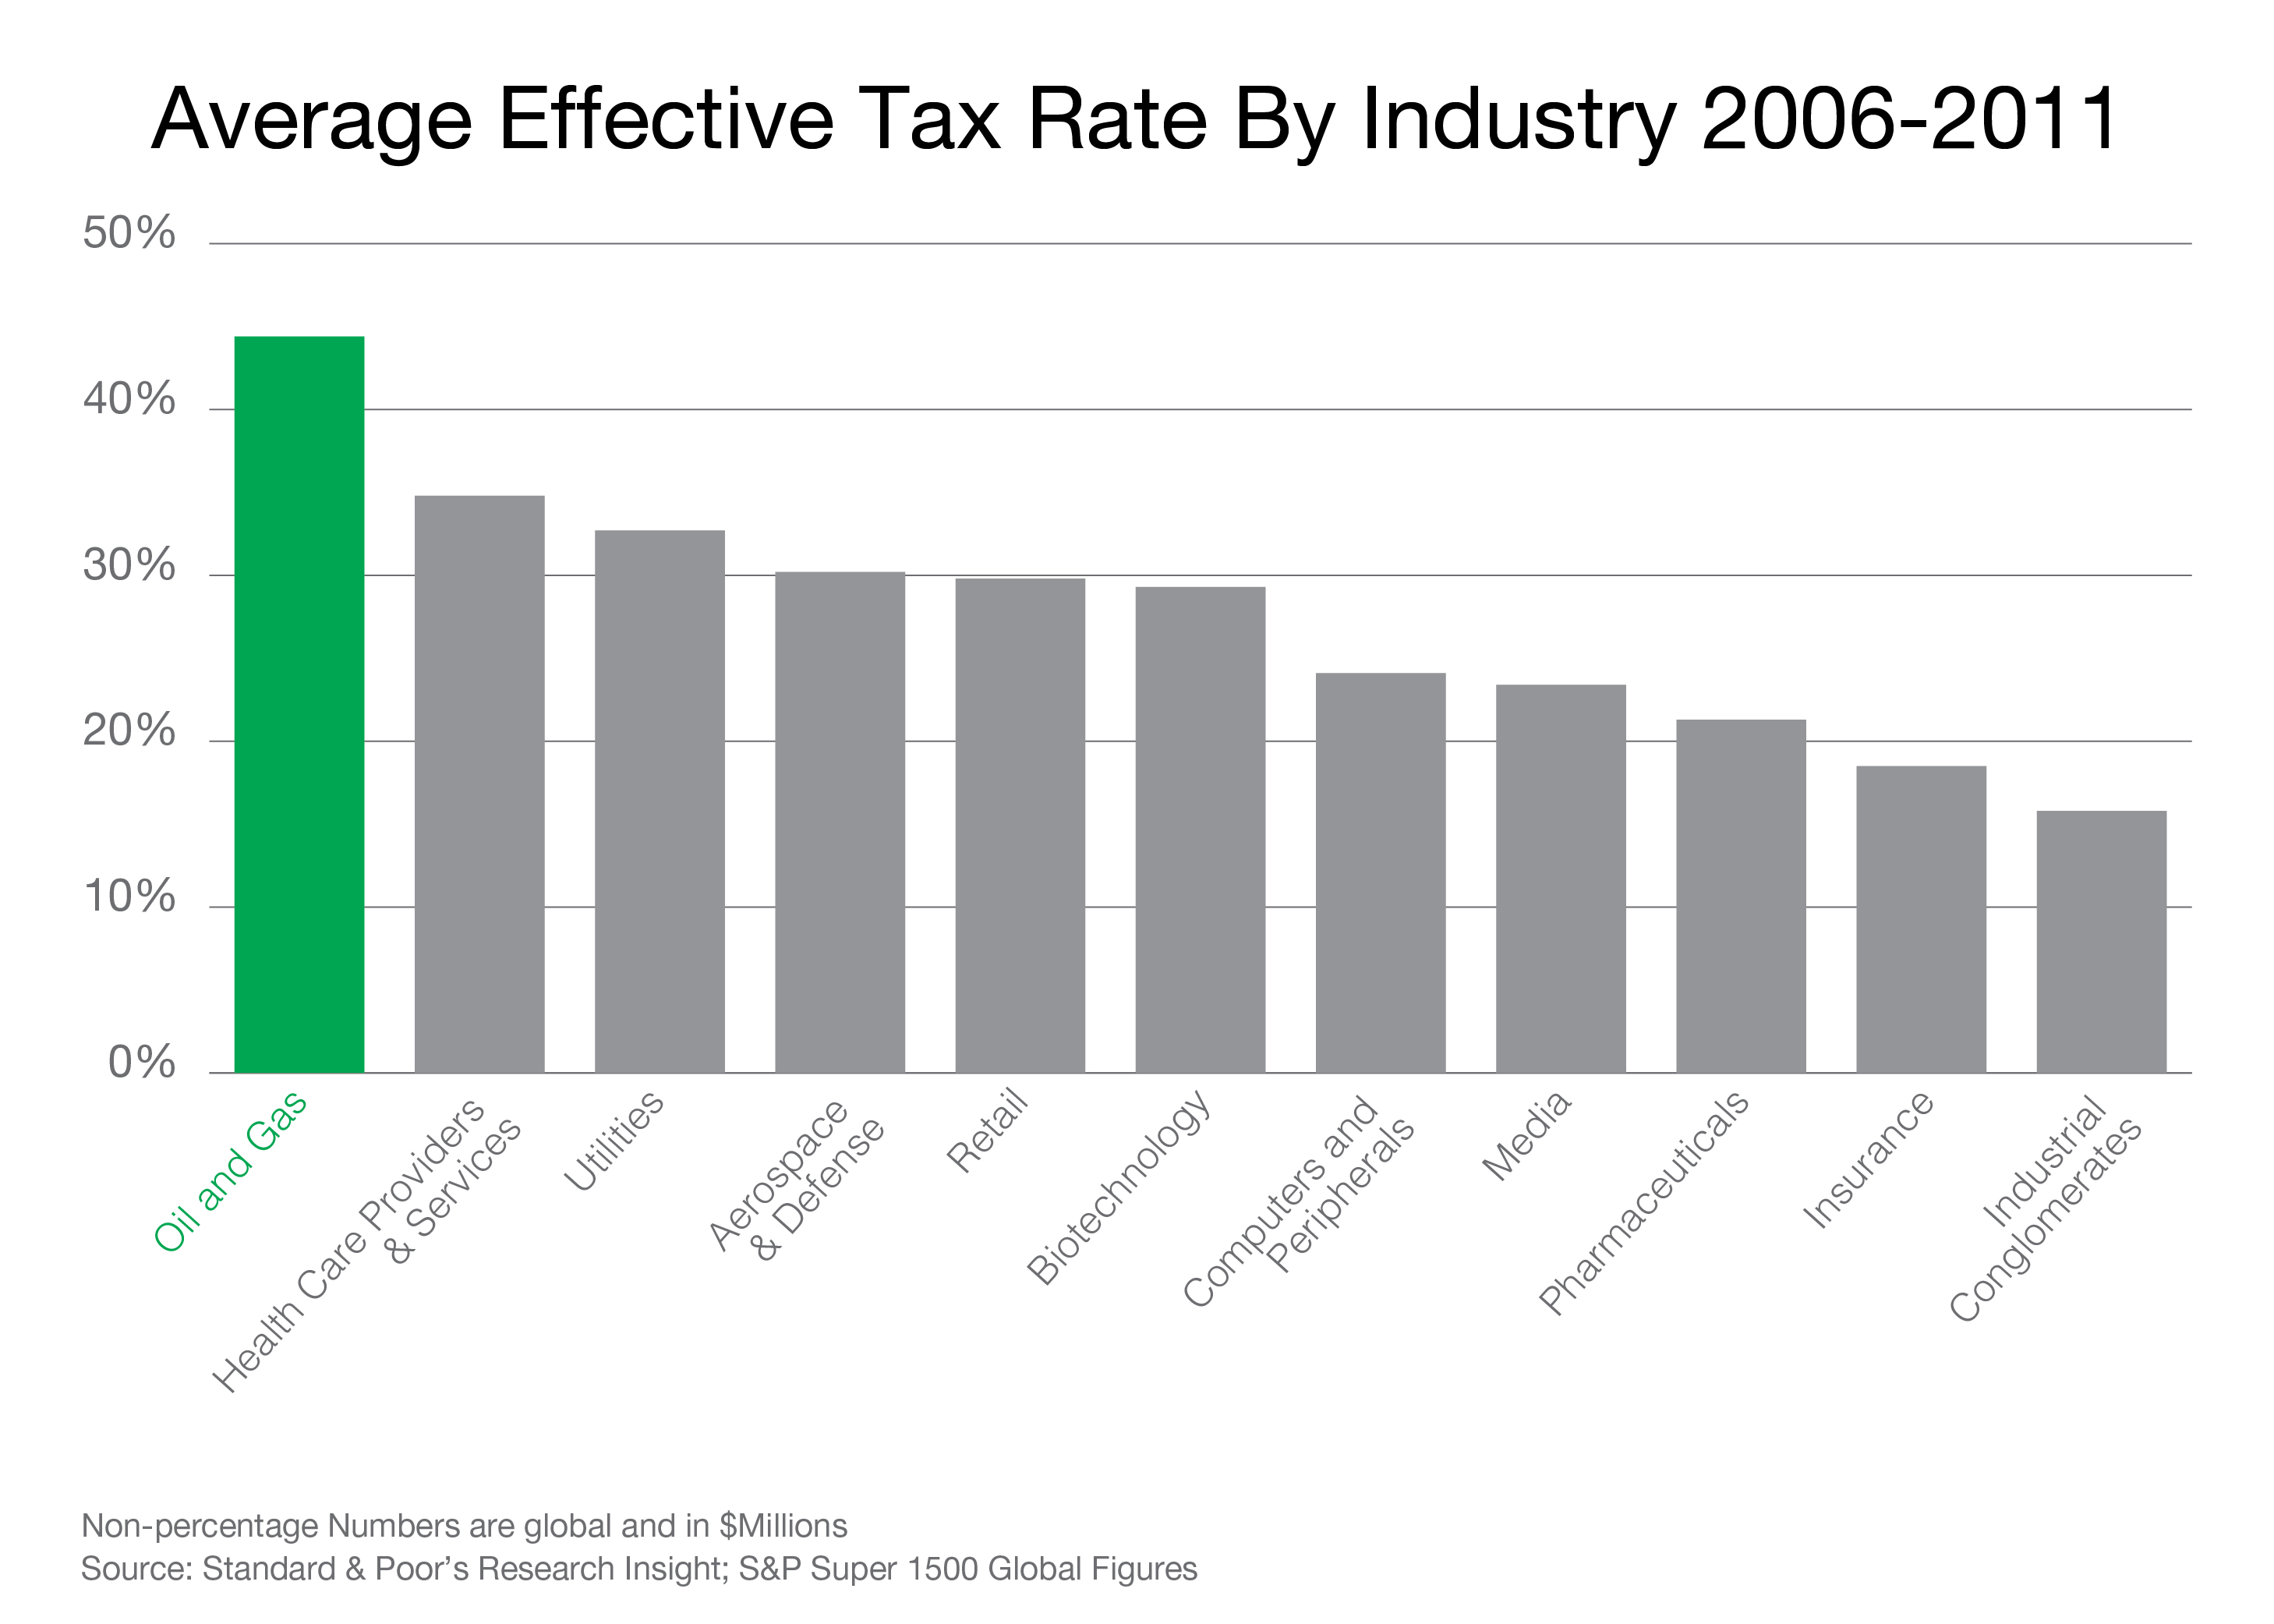 Effective Tax Rate by Industry 2006 to 2011